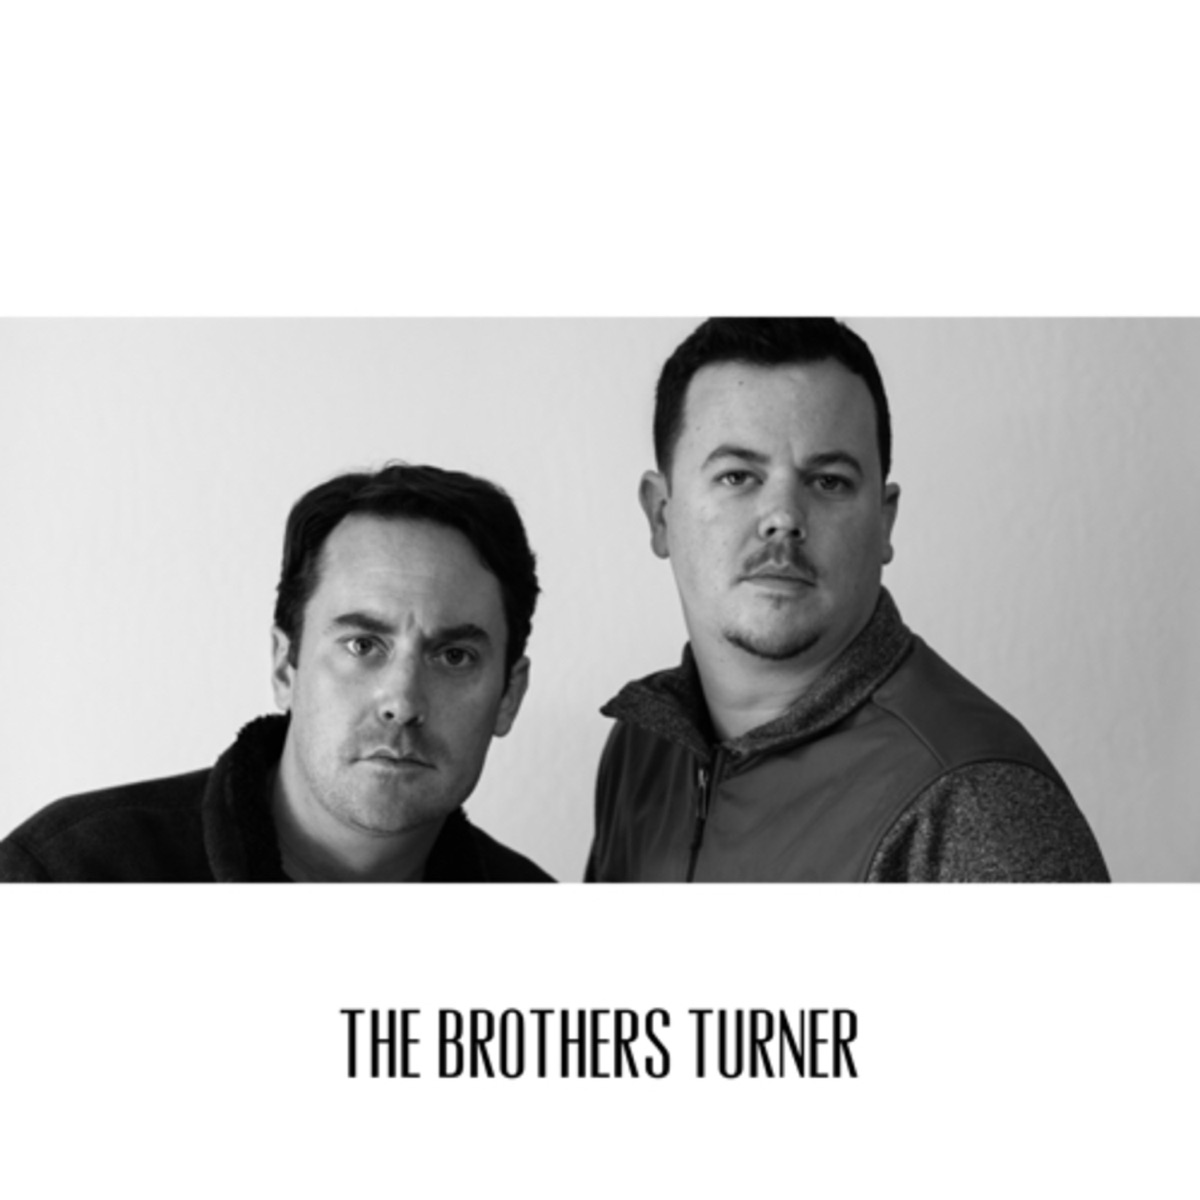 The Brothers Turner